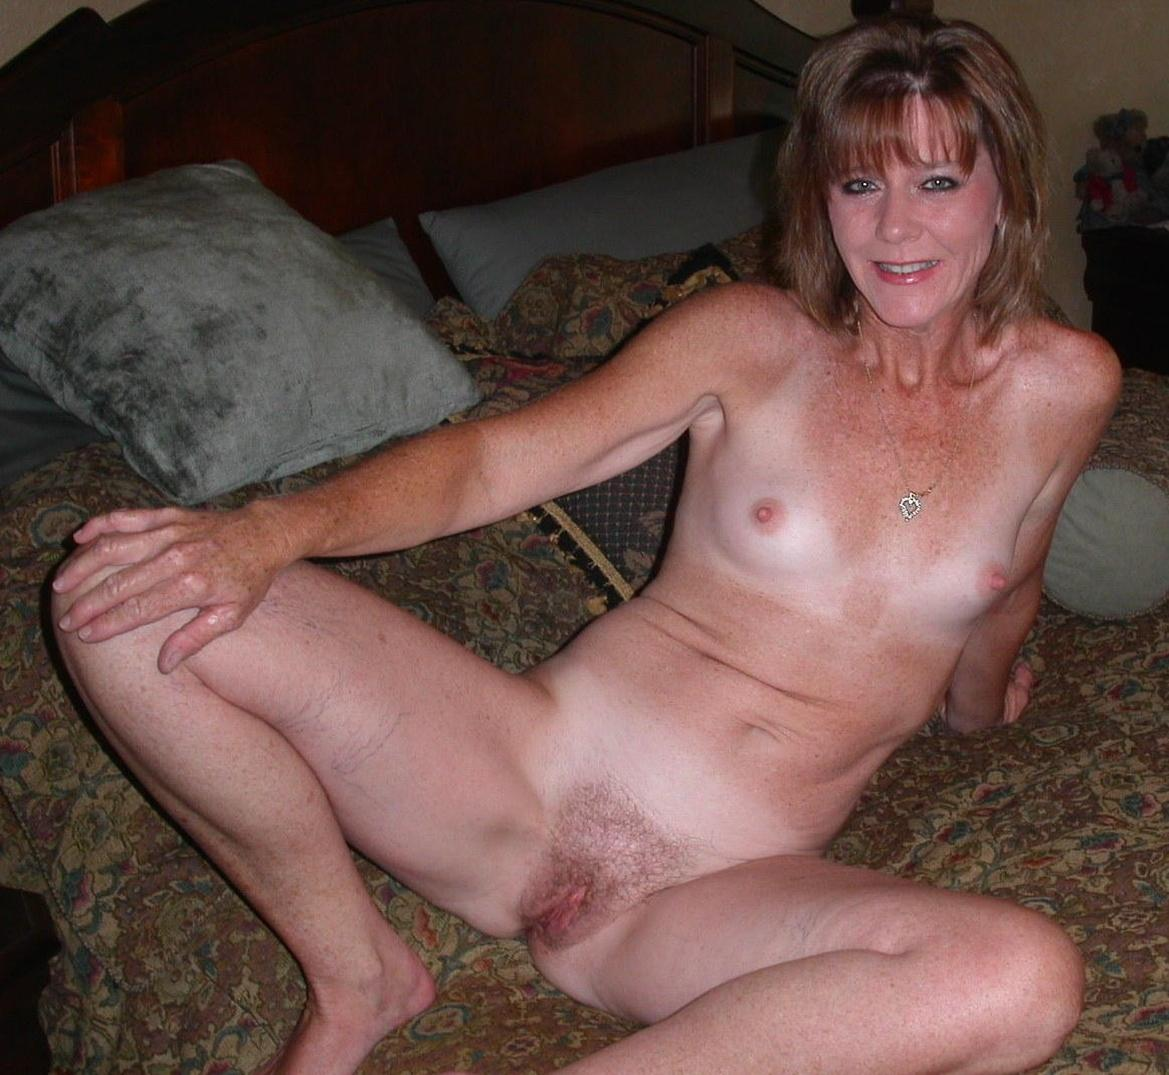 Mature Slut Gallery 80